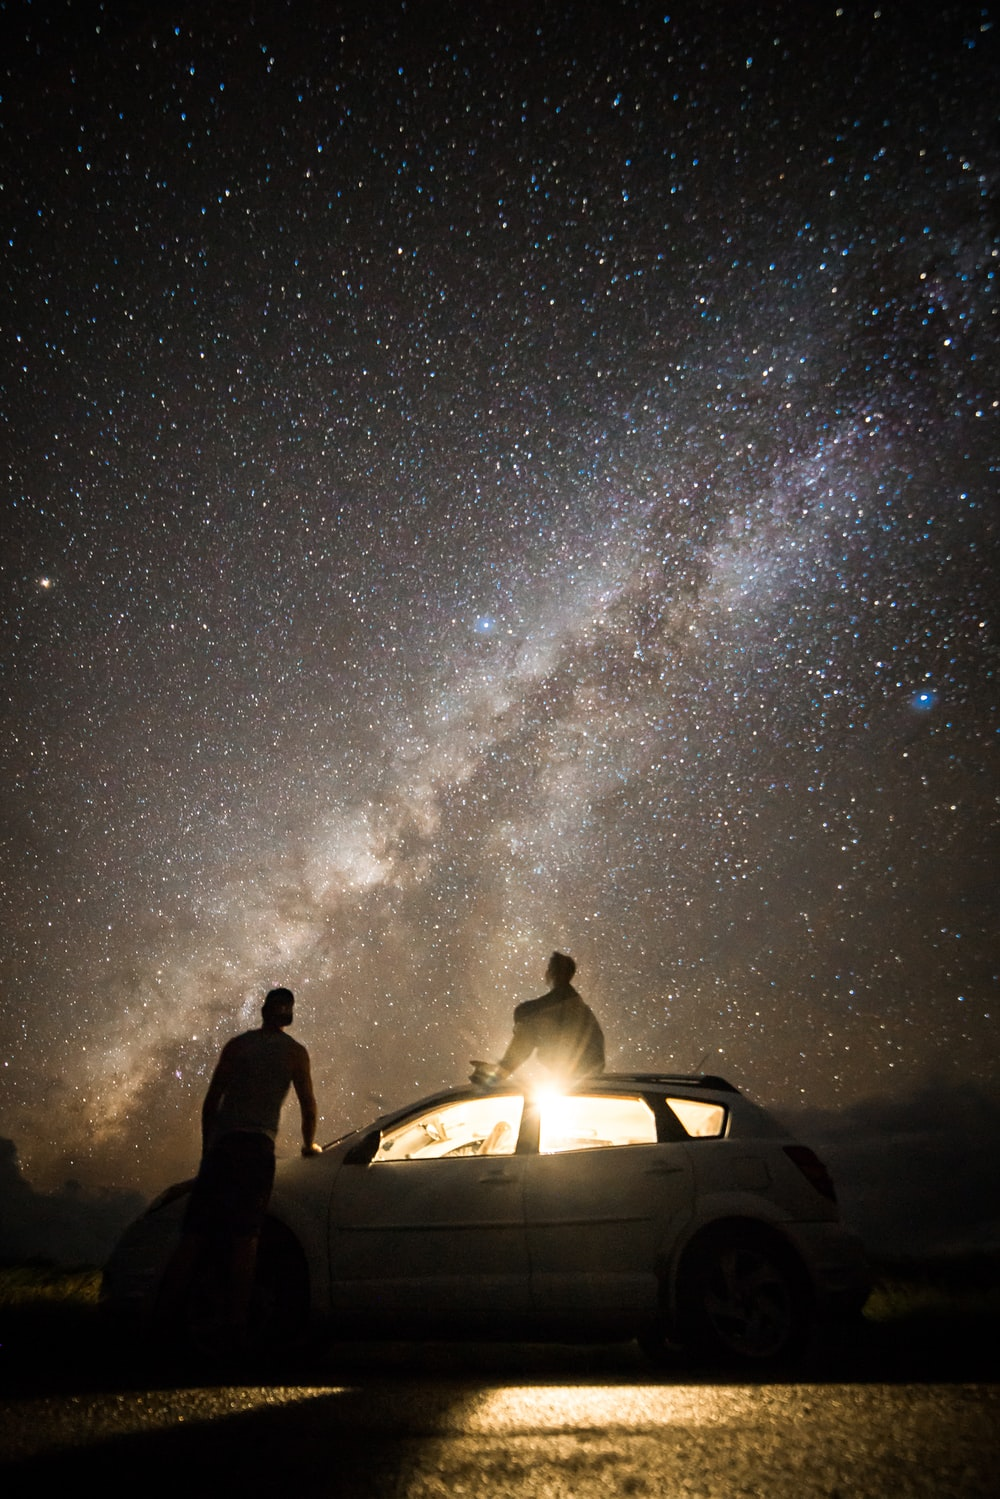 man sitting on the roof of the car watching the stars